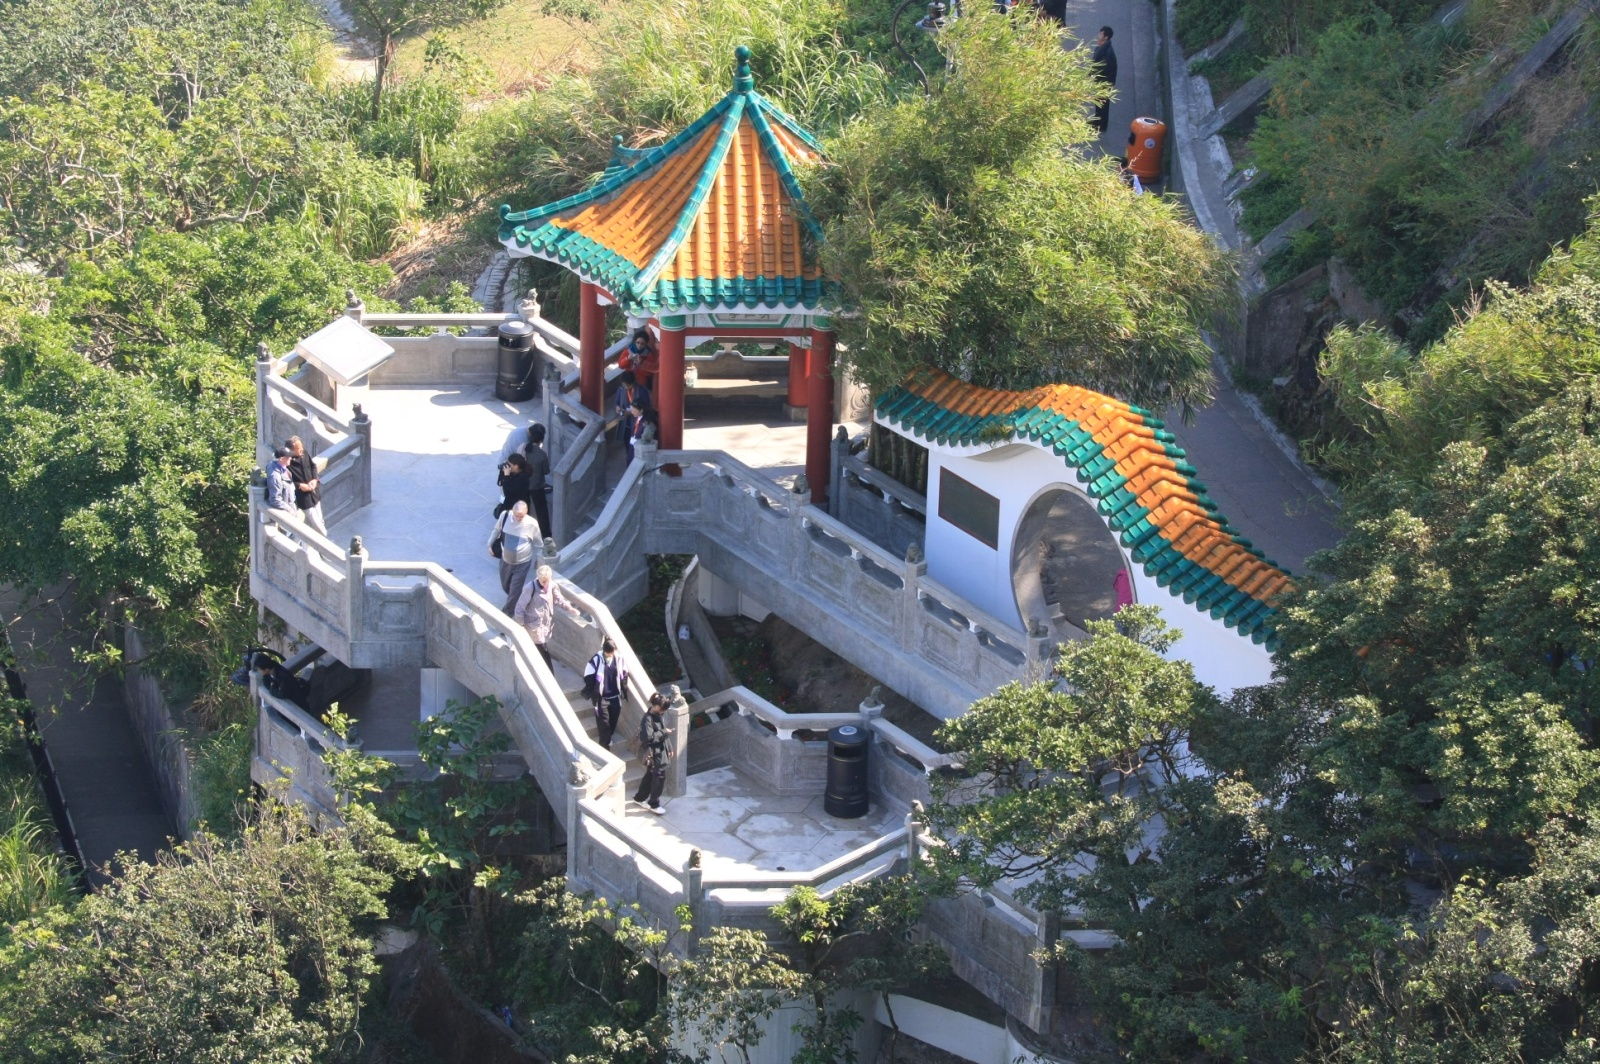 Nice free temple-like viewing platform. Why do people pay for the Victoria Peak Gallery?